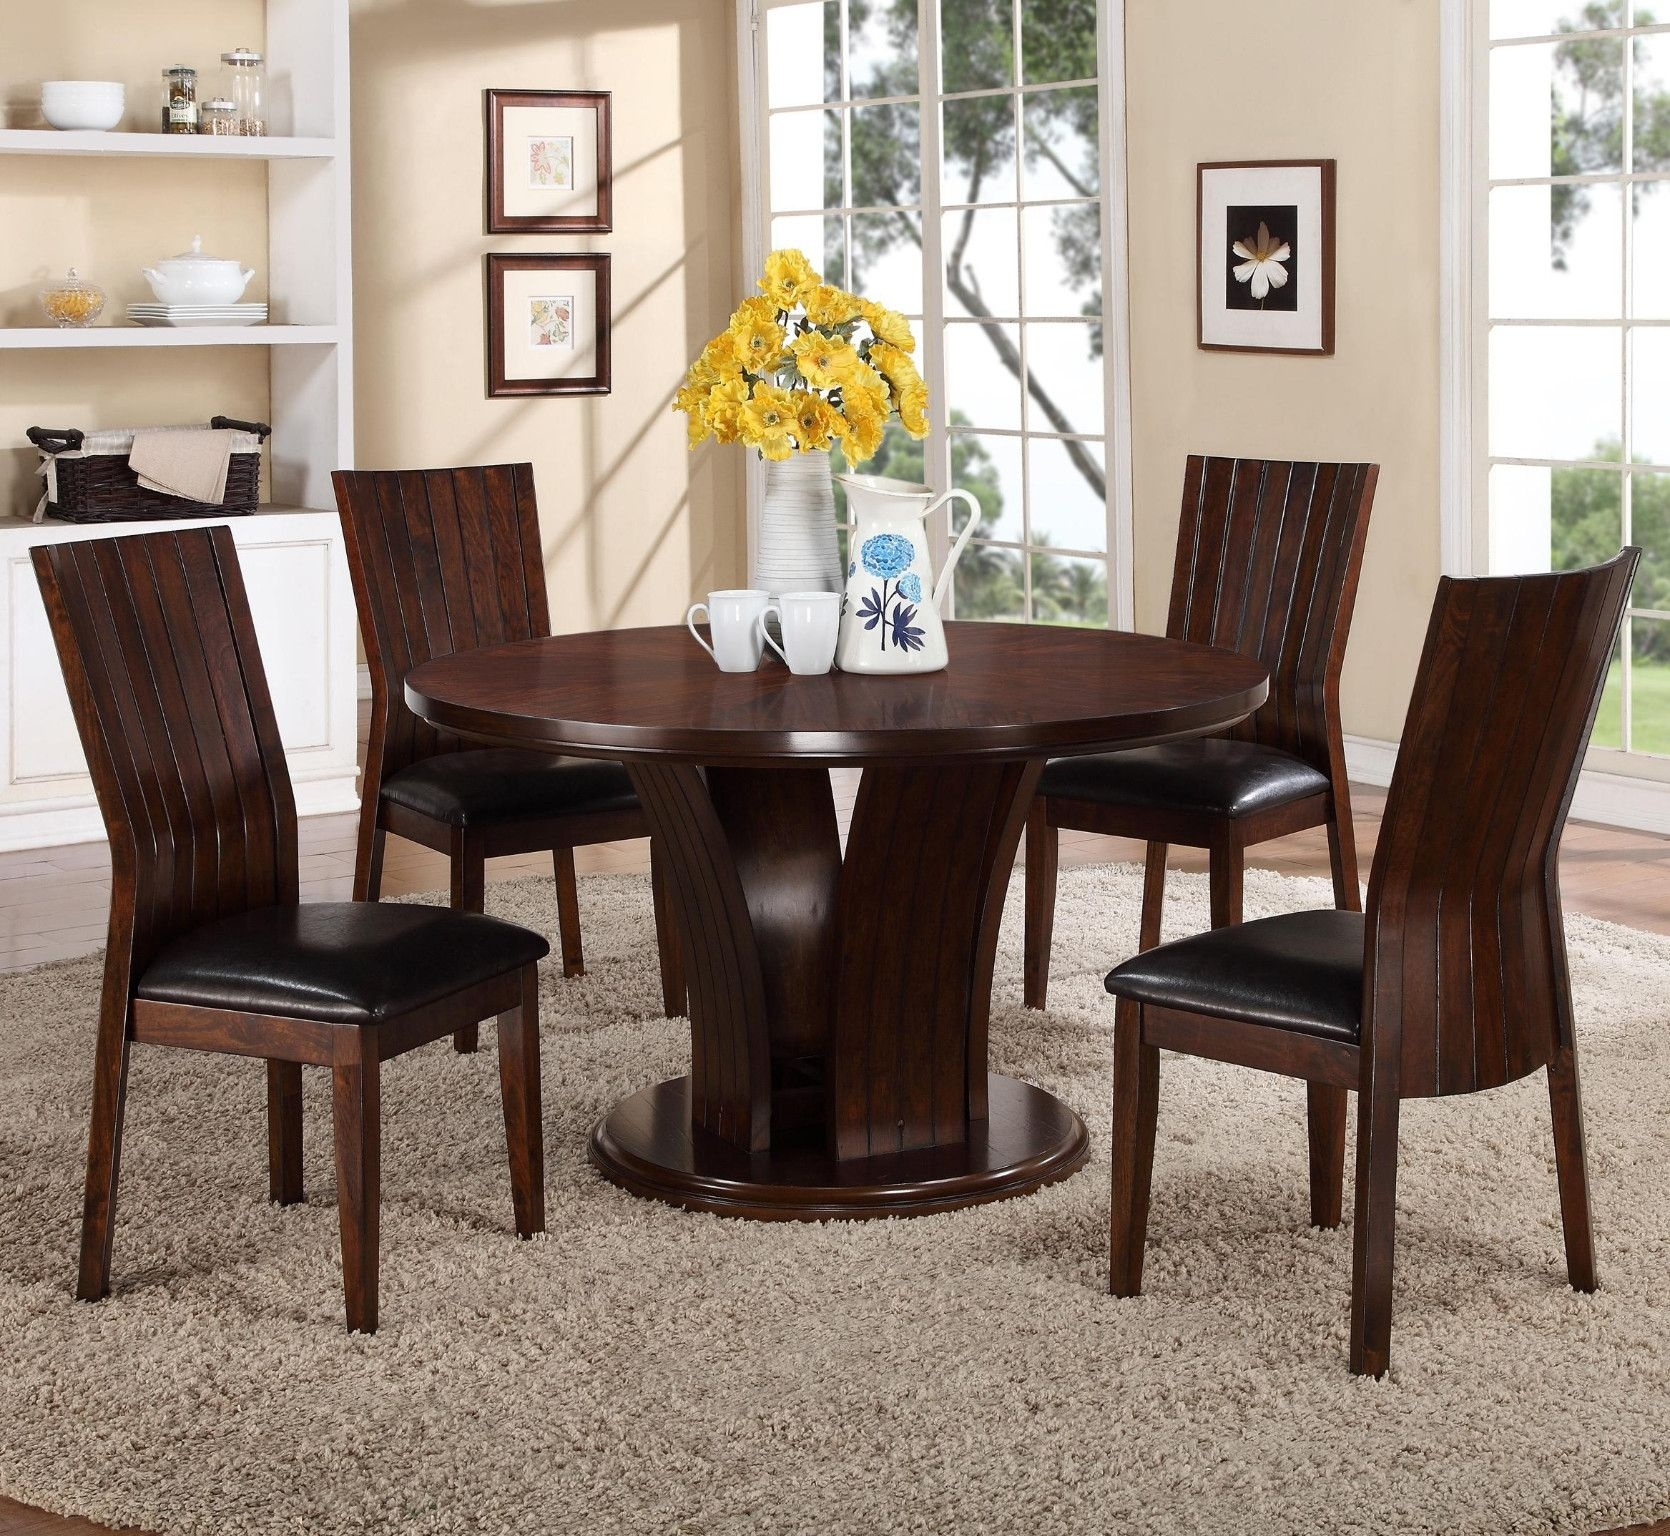 Daria Espresso 5 Piece Dining Set Starburst Veneer Top Table And 4 With Regard To Most Recent Market 7 Piece Dining Sets With Side Chairs (Photo 10 of 20)